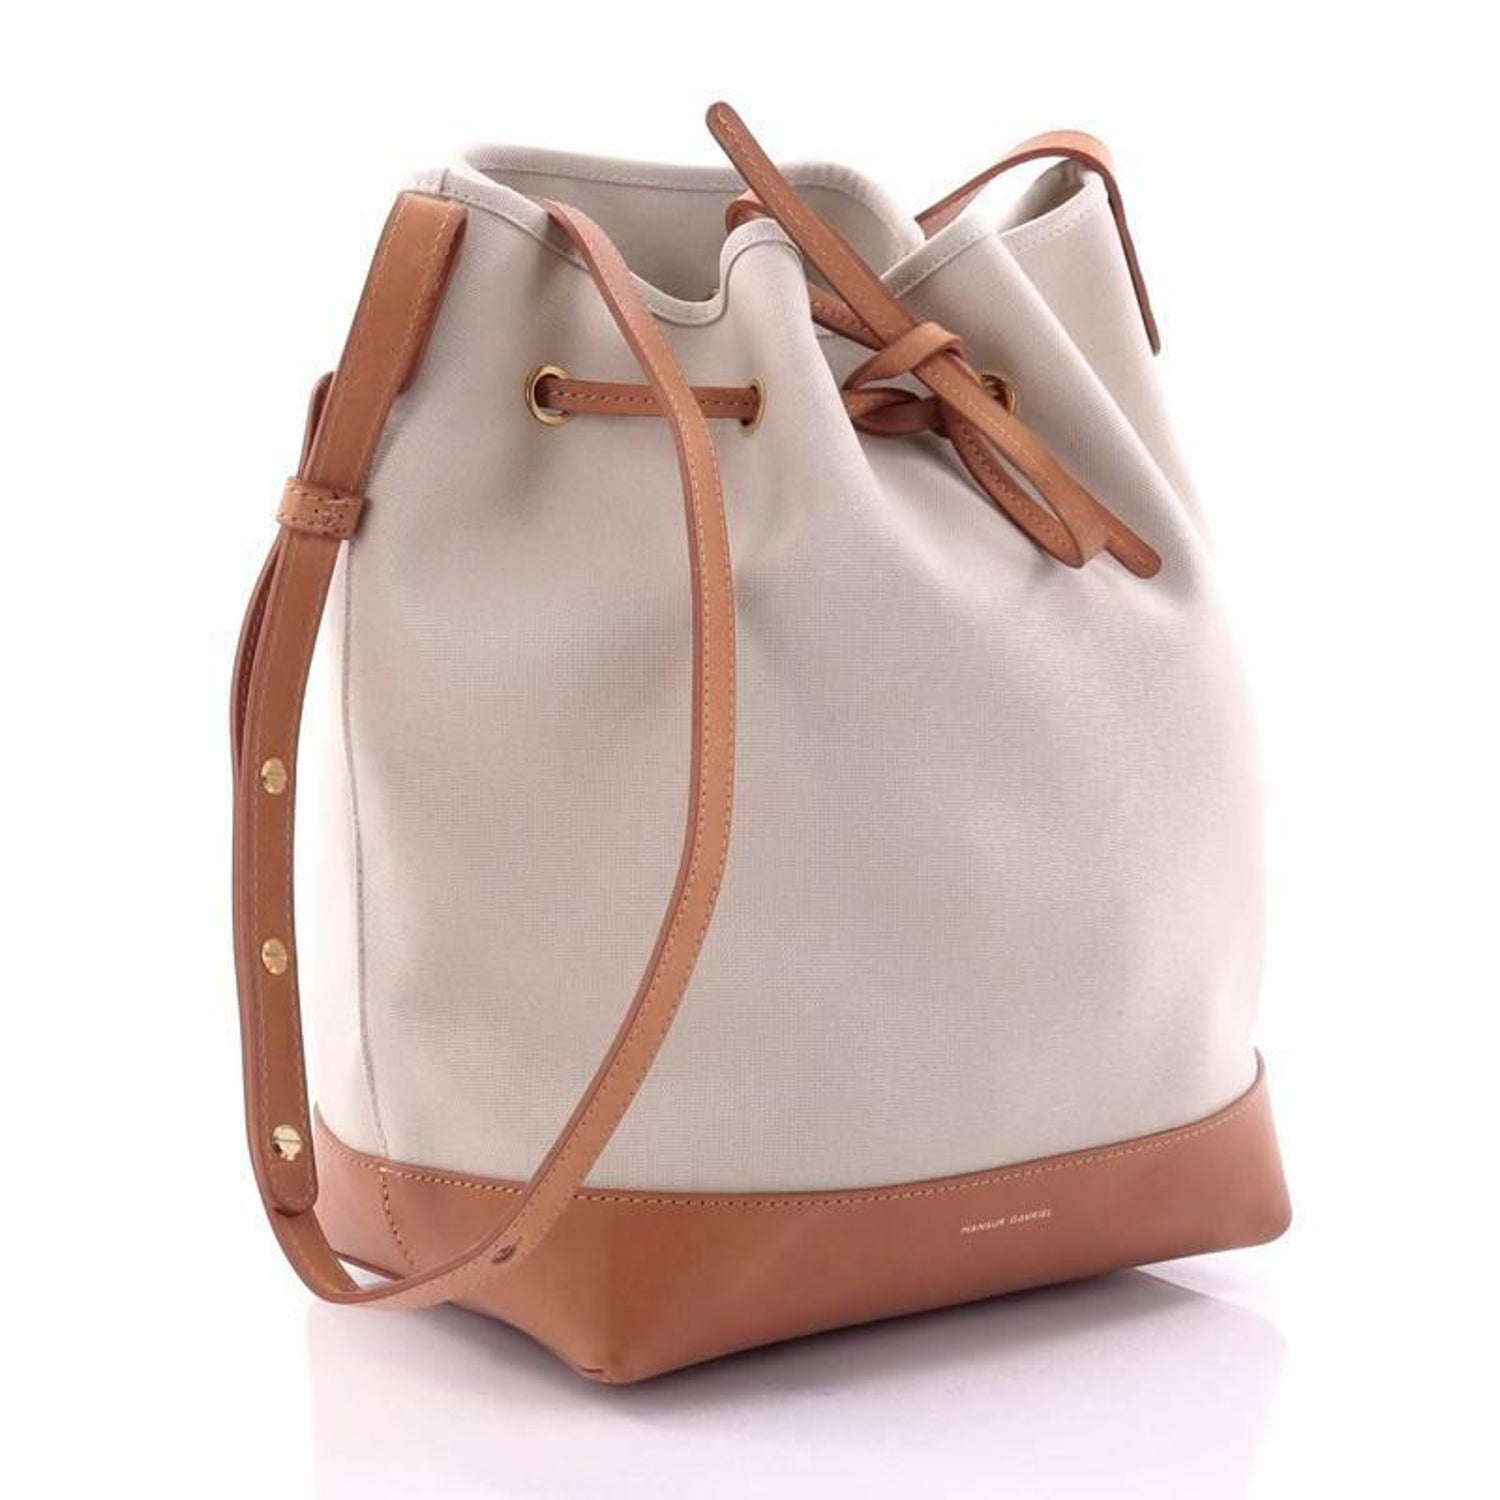 e26f5a37fc43 Mansur Gavriel Bucket Bag Canvas Large at 1stdibs